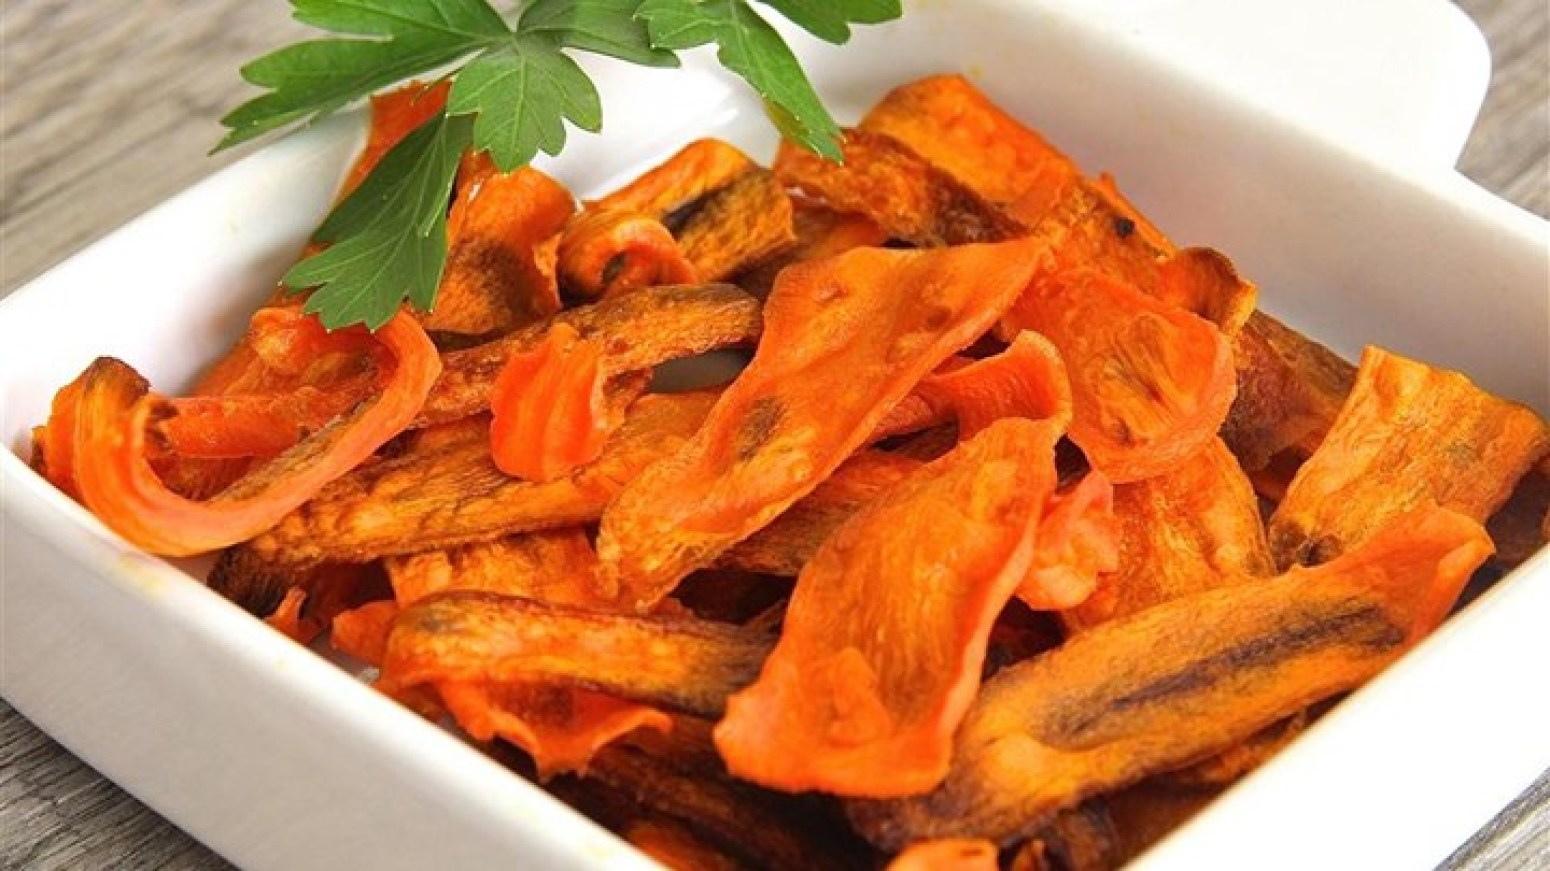 Carrot Chips Recipe 3 | Just A Pinch Recipes